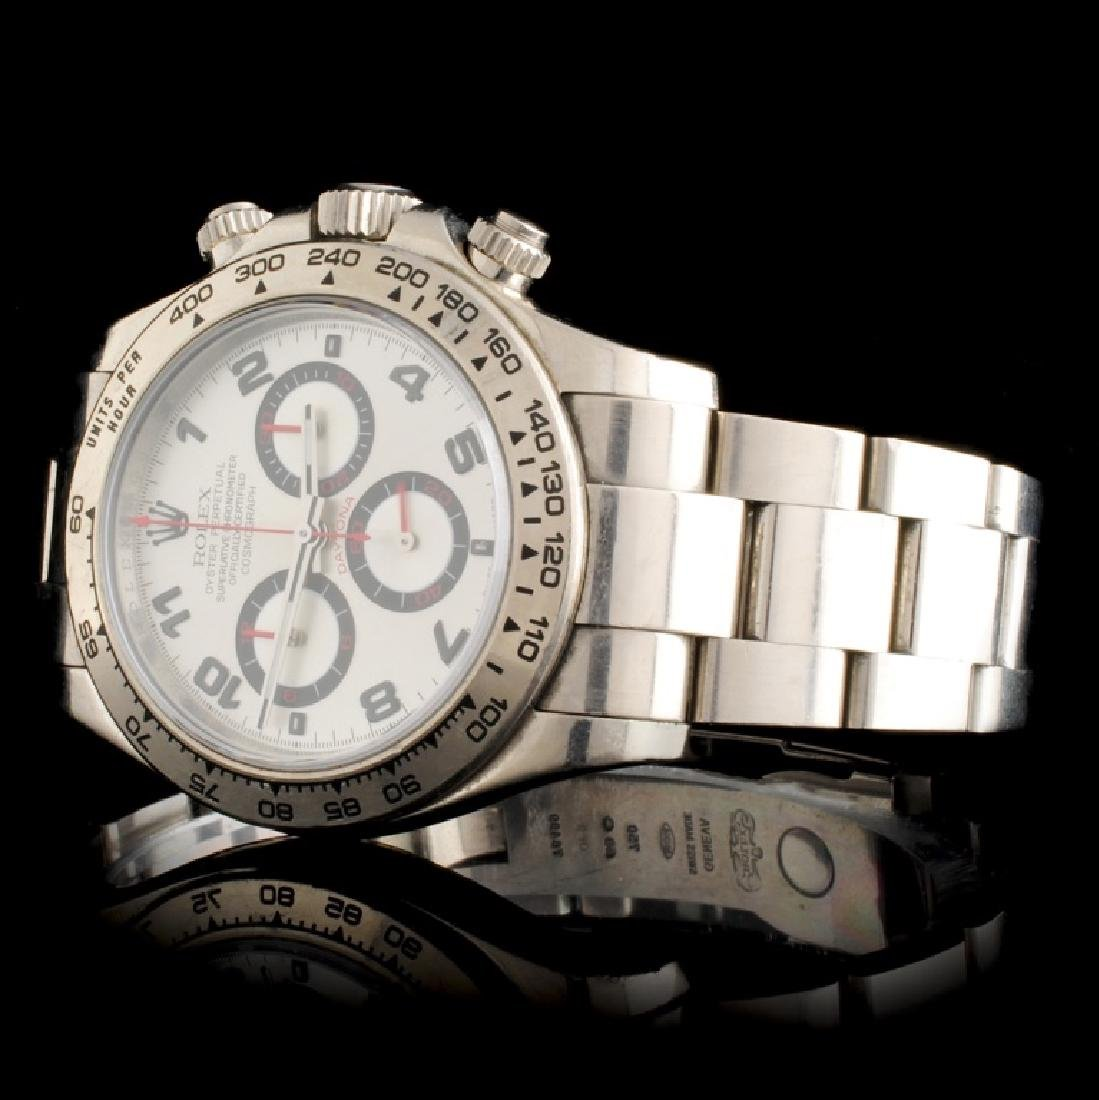 Rolex Daytona 18K White Gold Wristwatch - 2